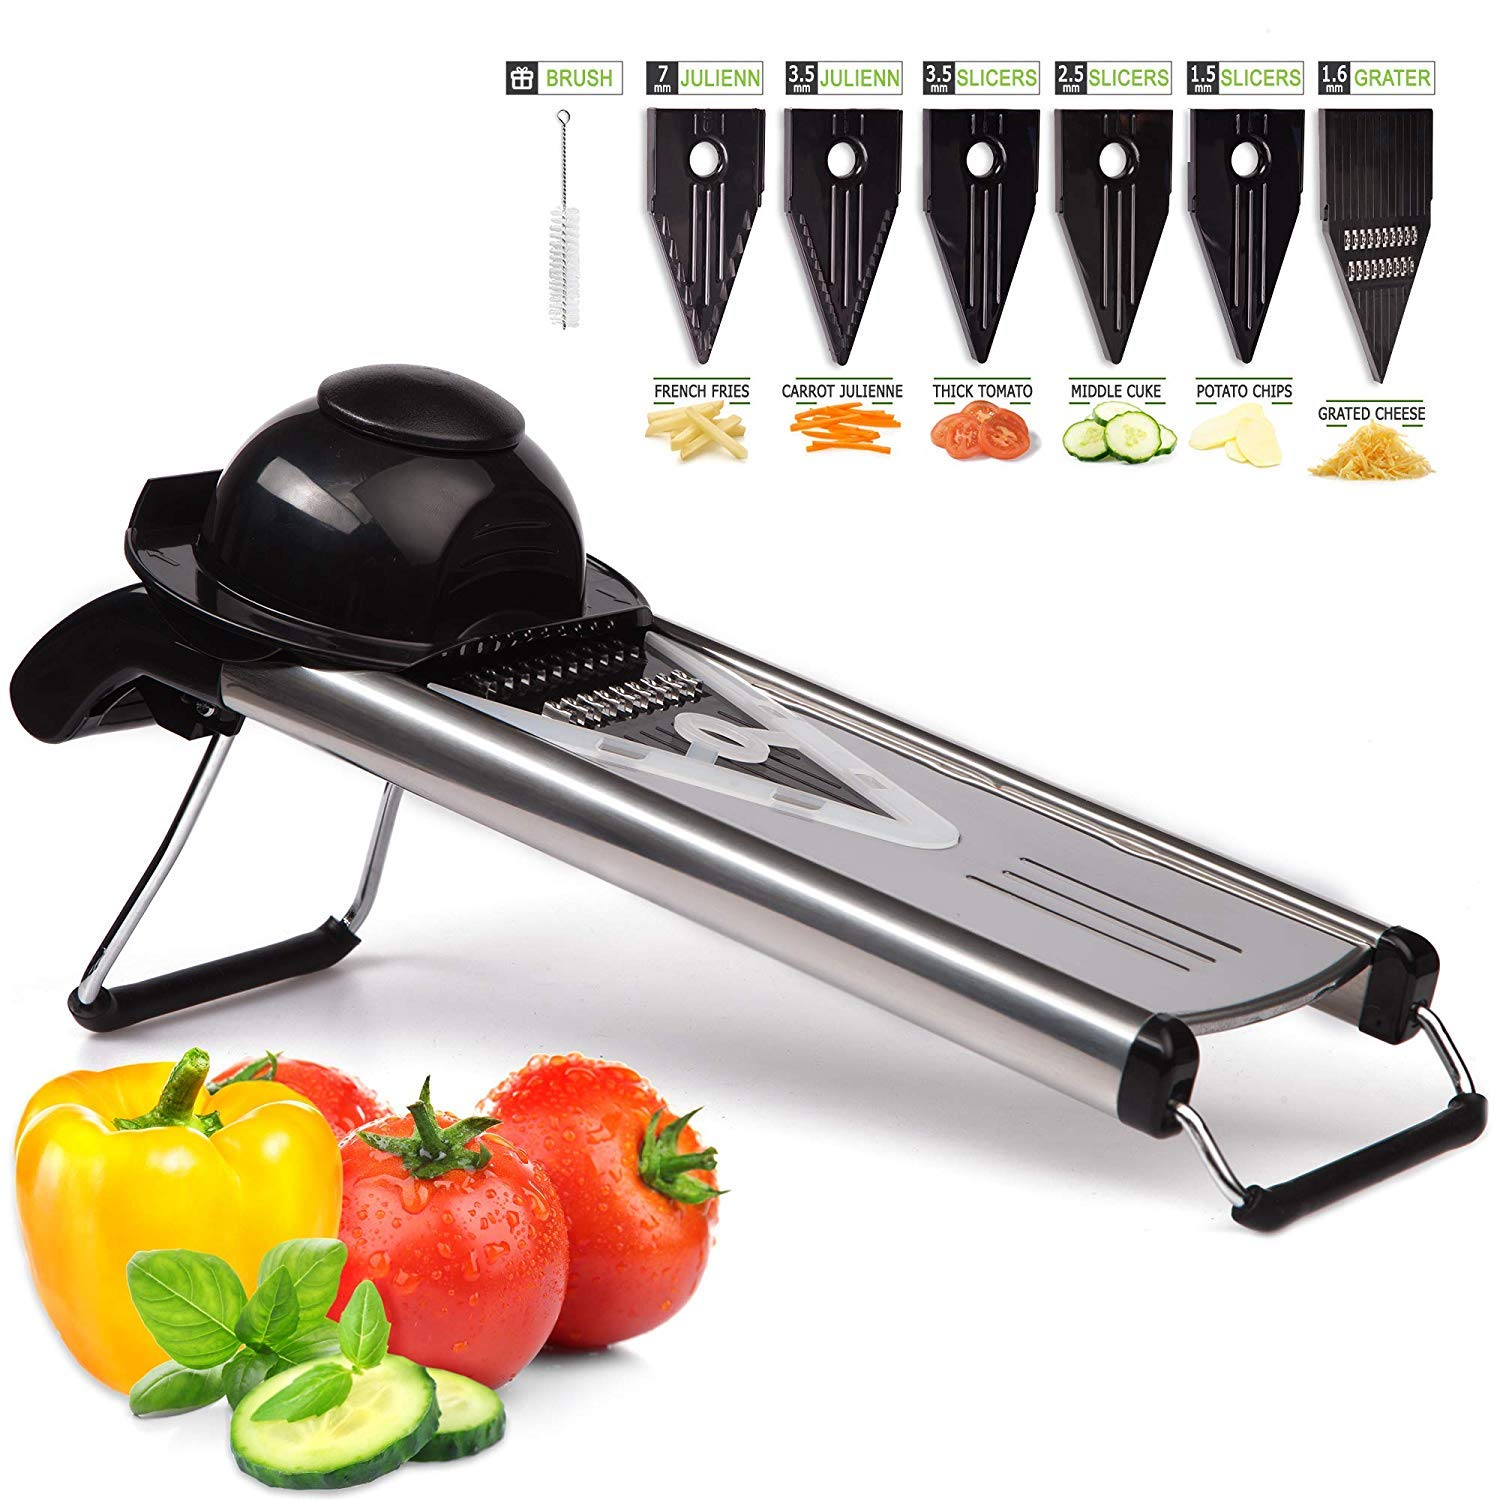 V Blade Stainless Steel Mandoline Slicer - Fruit and Food Slicer, Vegetable Cutter, Cheese Grater - Vegetable Julienne Slicer with Surgical Grade Stainless Steel Blades [BLACK] by TechCulinary